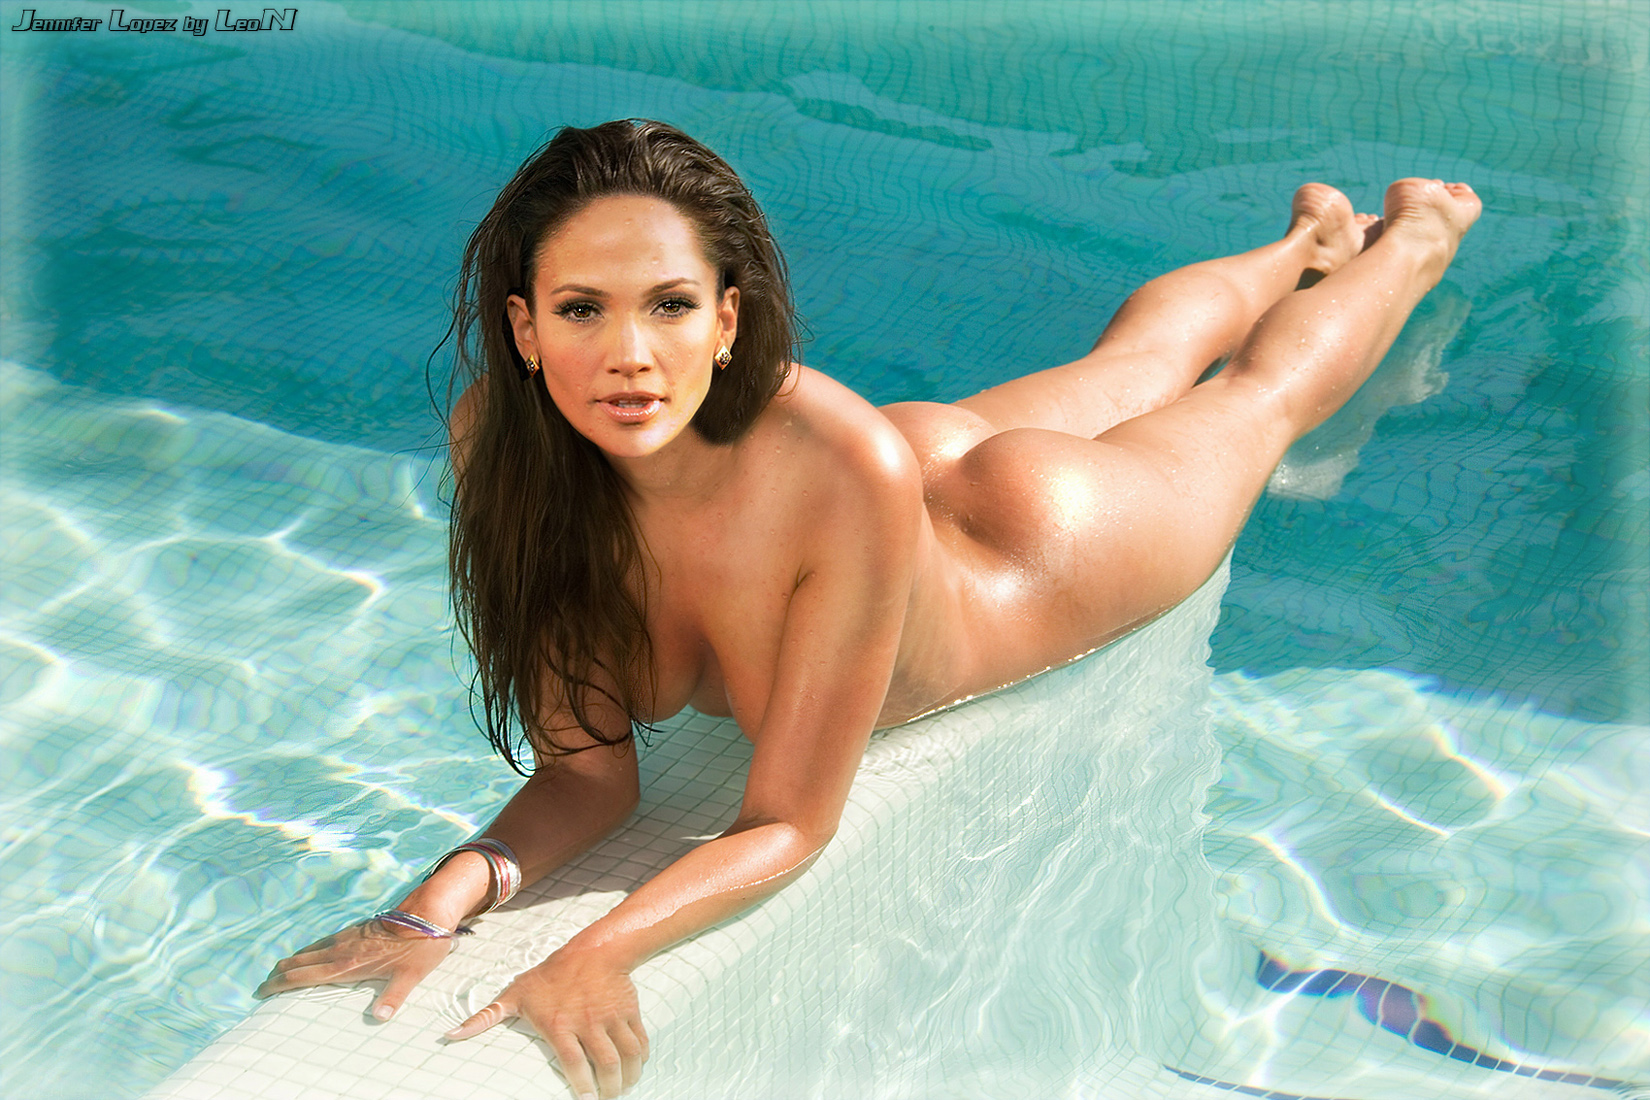 Jennifer lopez erotic